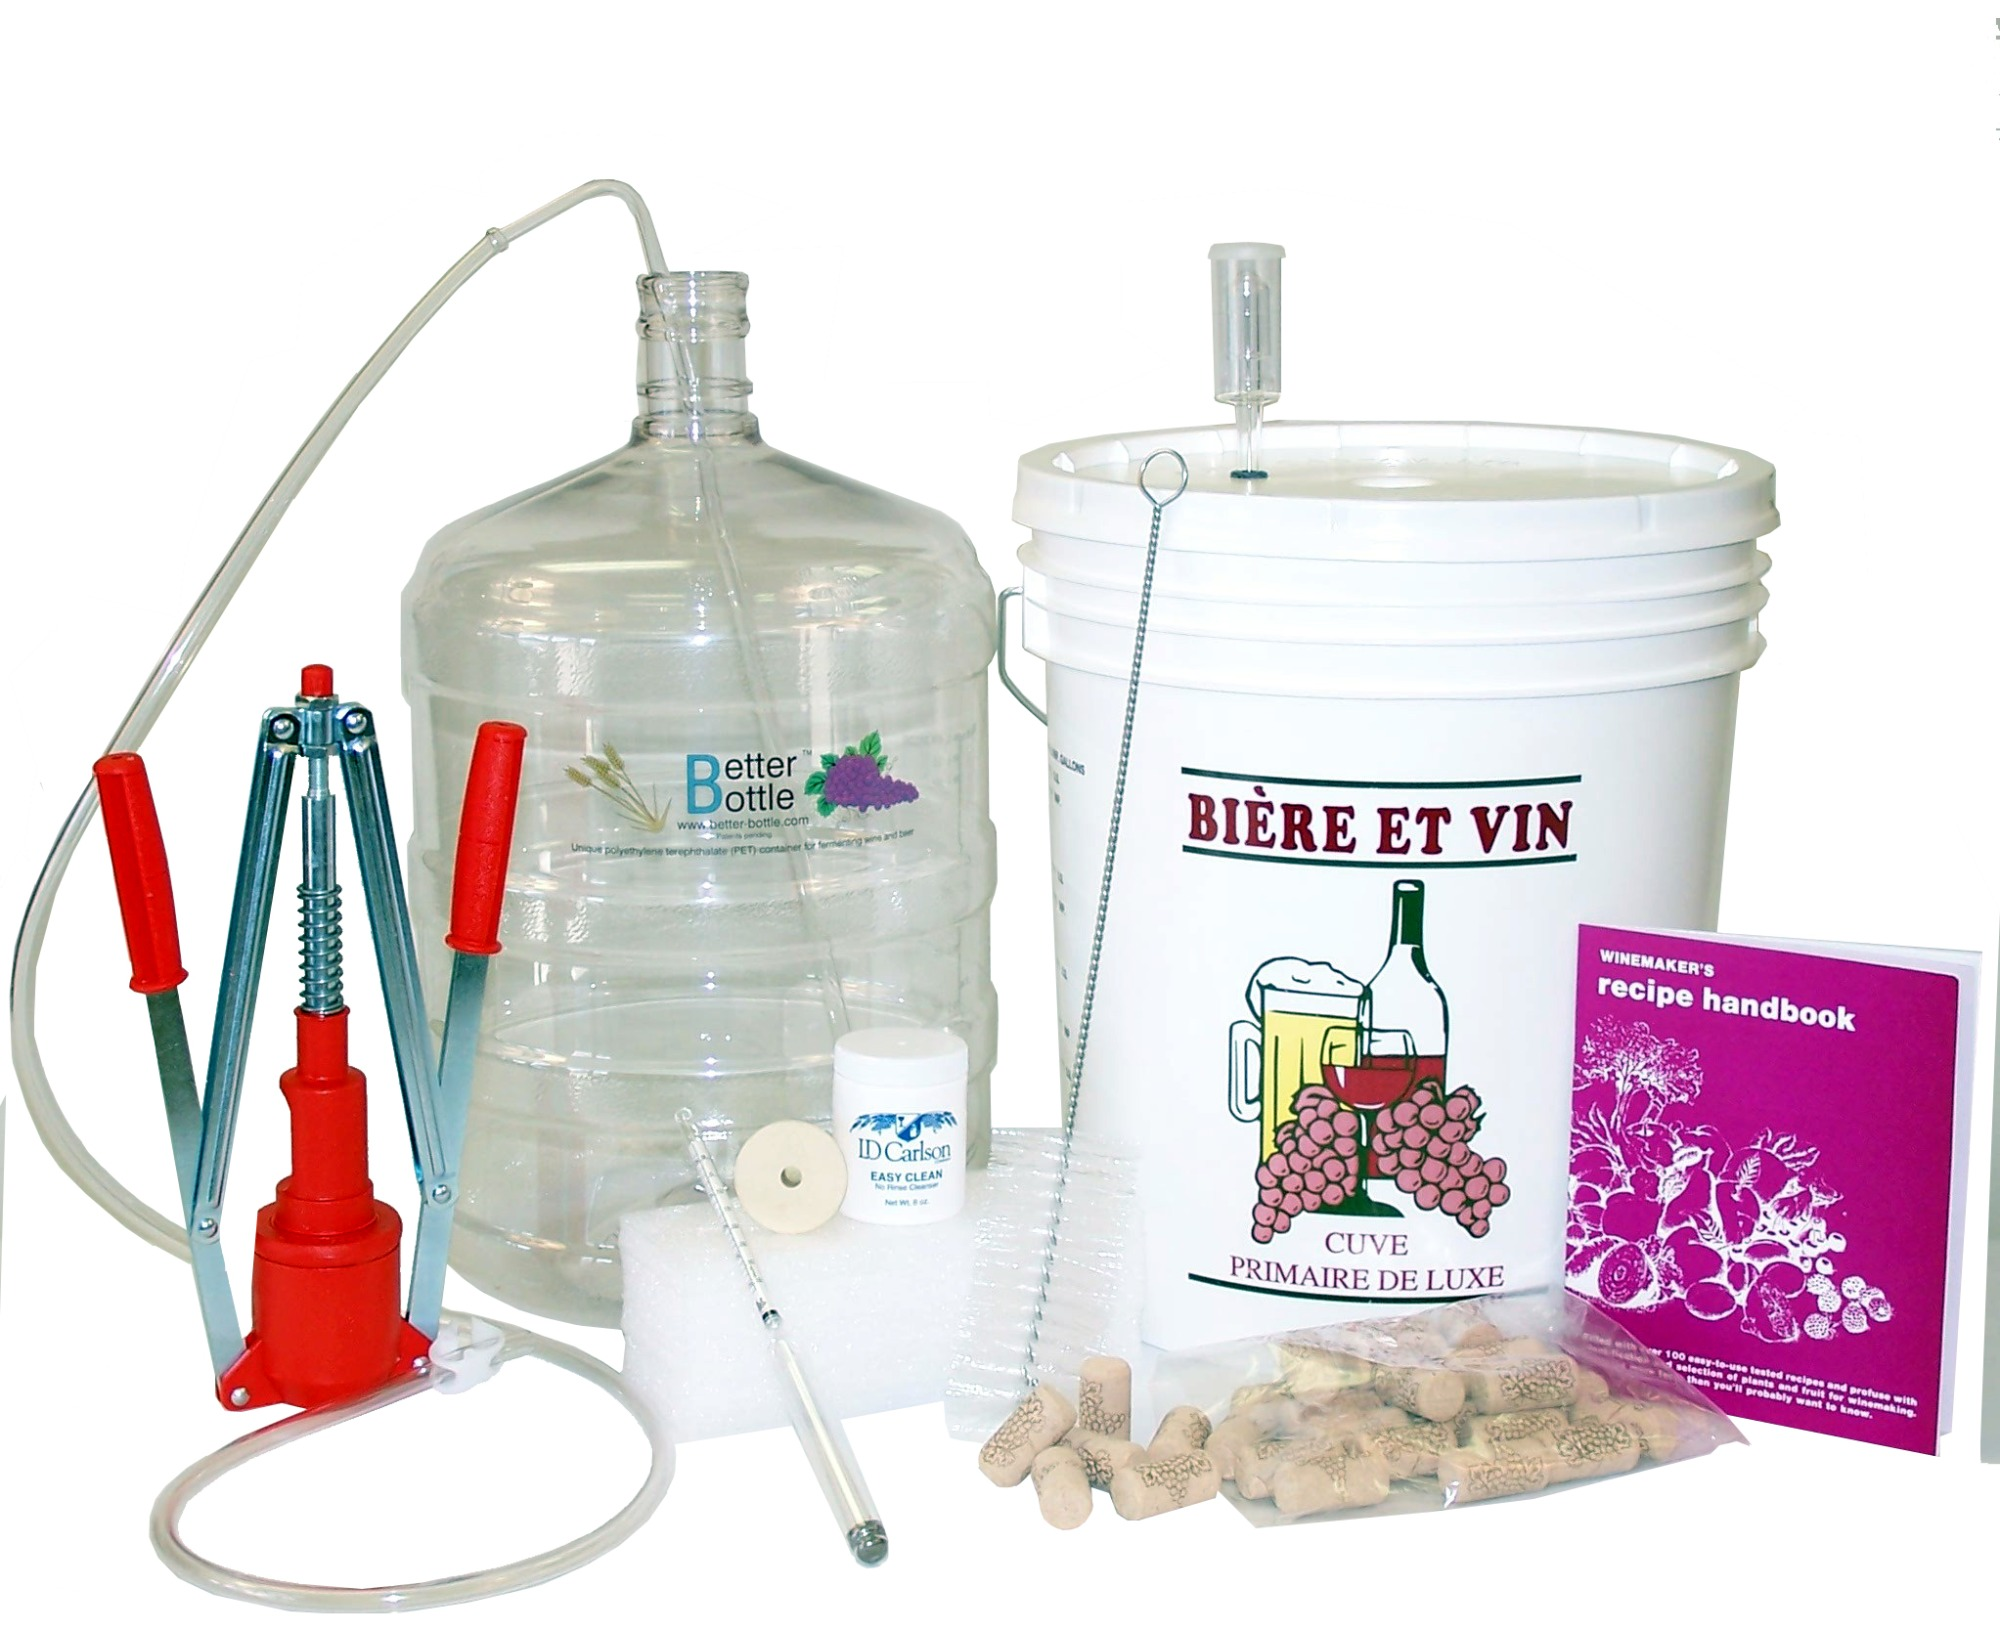 How to make wine at home wine kits the lazy winemaker for Kit per palafitte